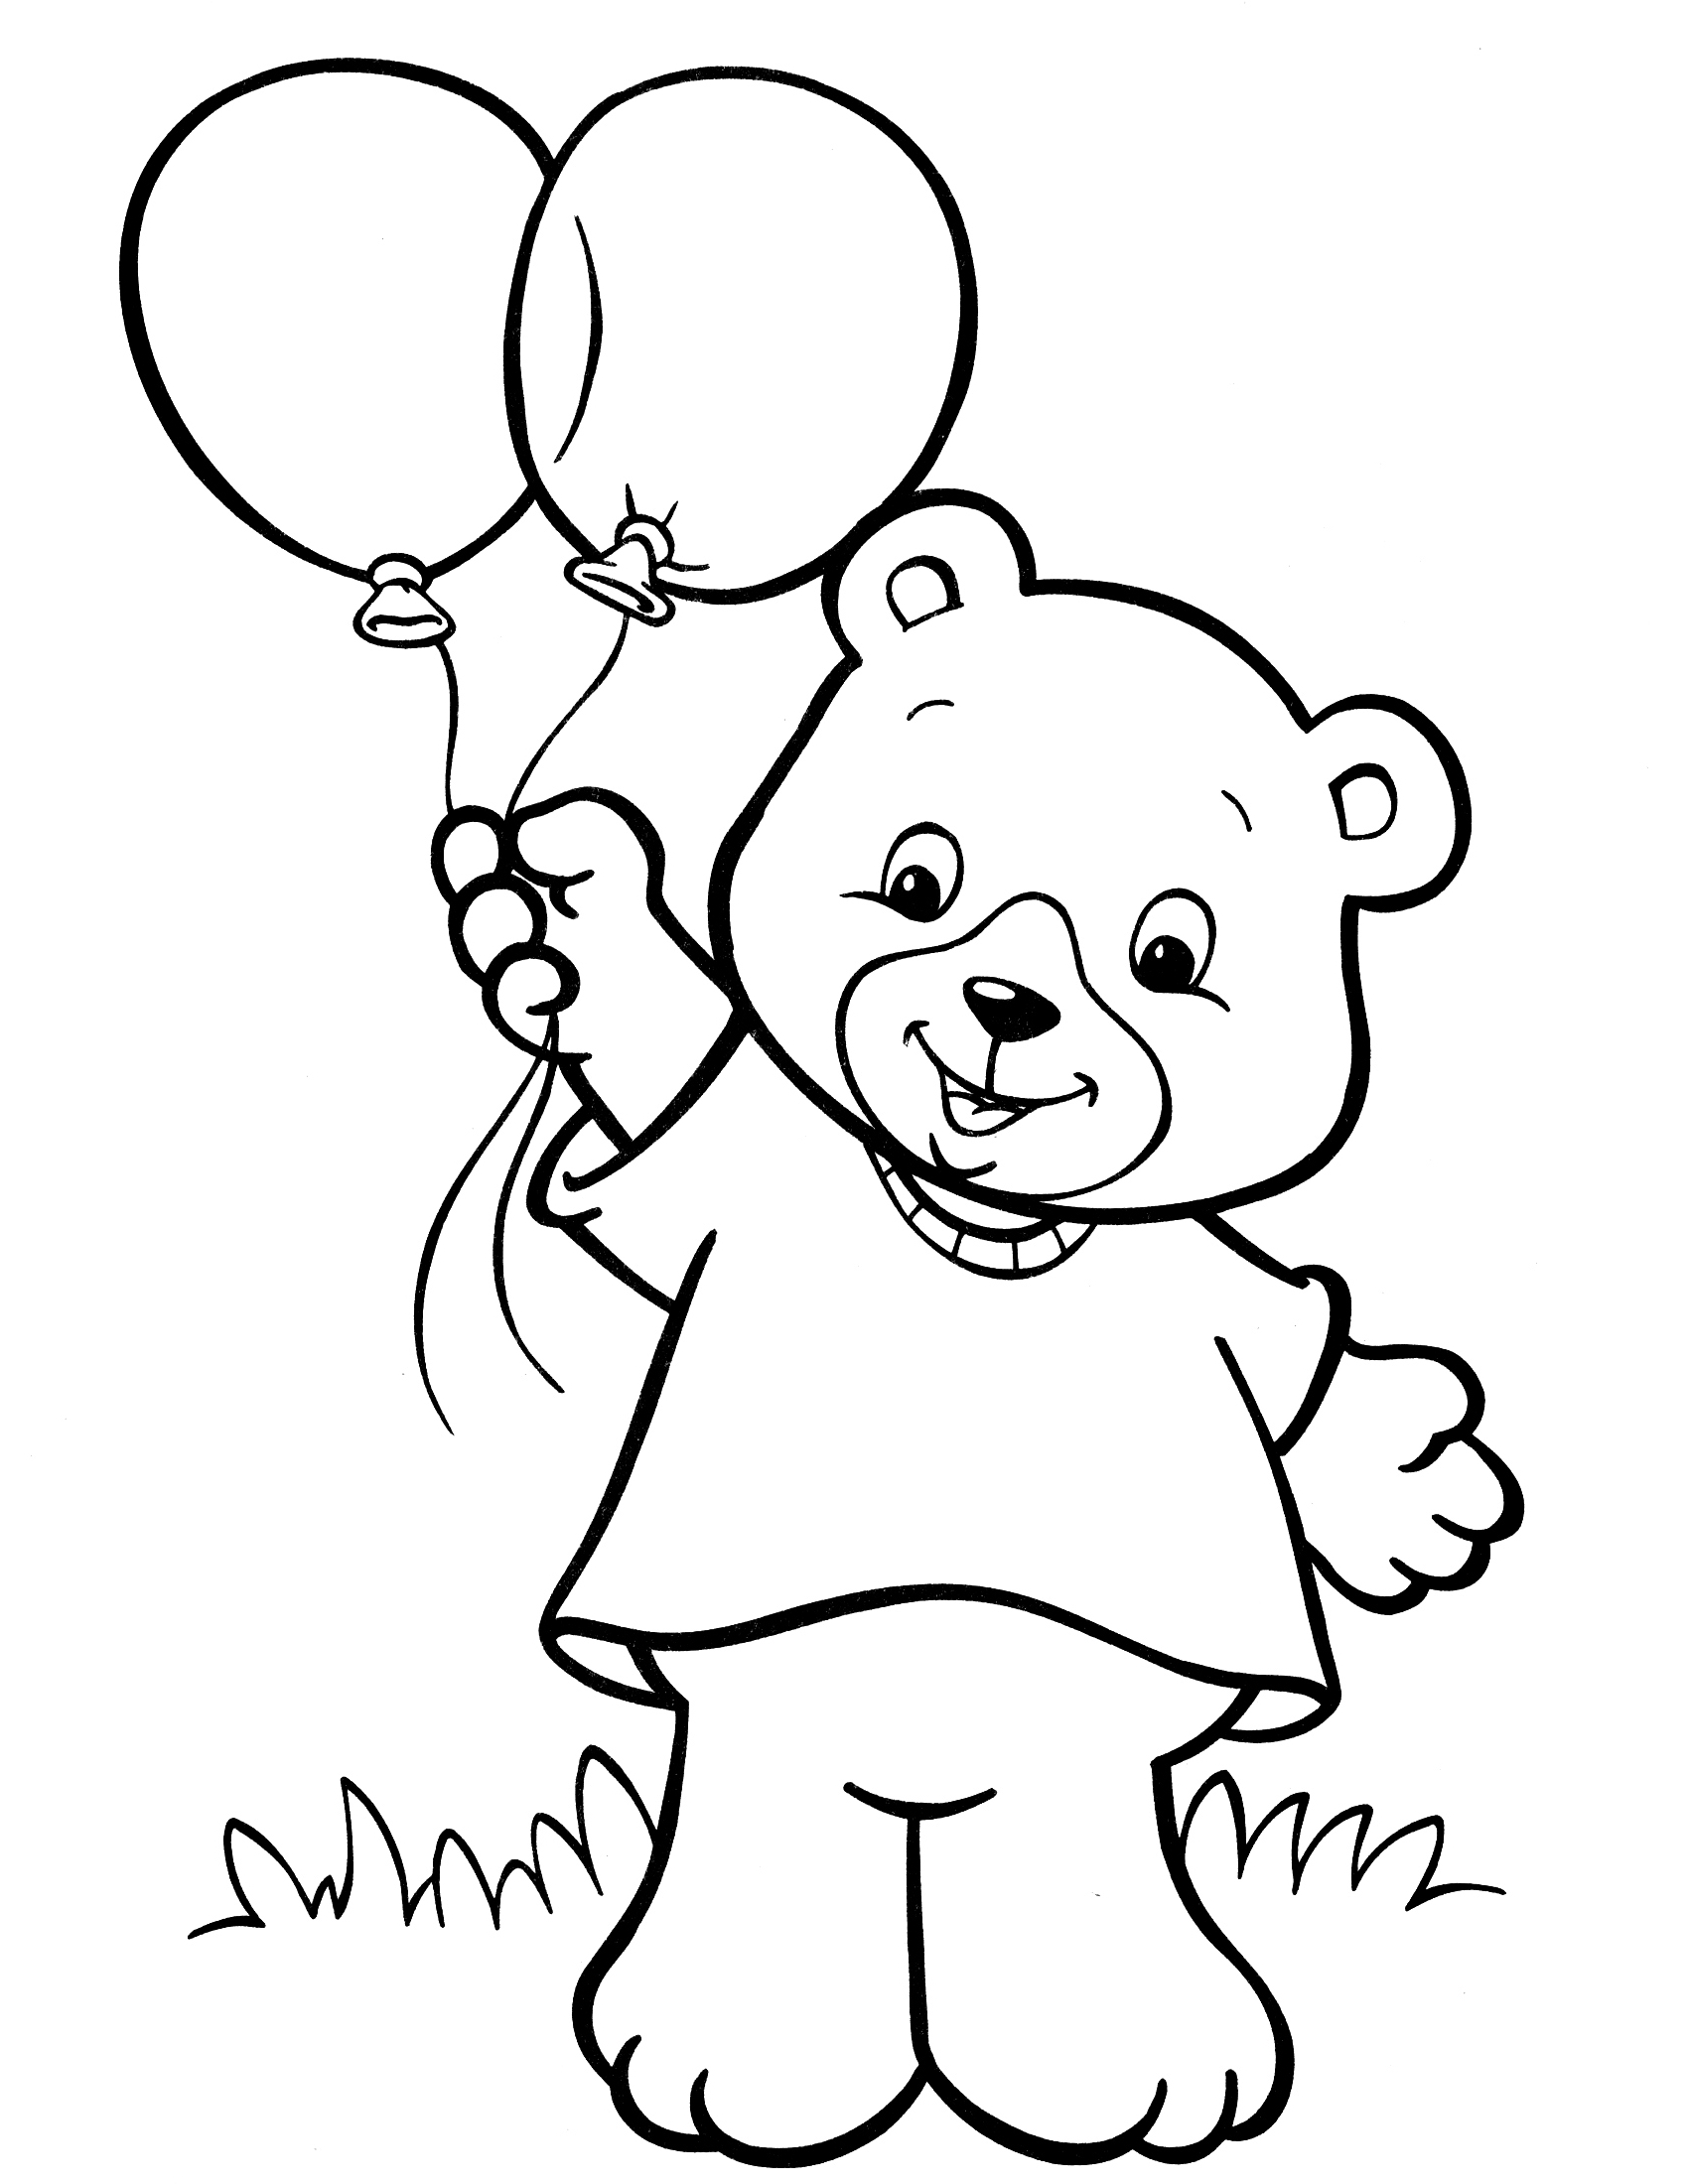 coloring pages 2 year old free printable coloring pages for 2 year olds free printable 2 pages coloring old year